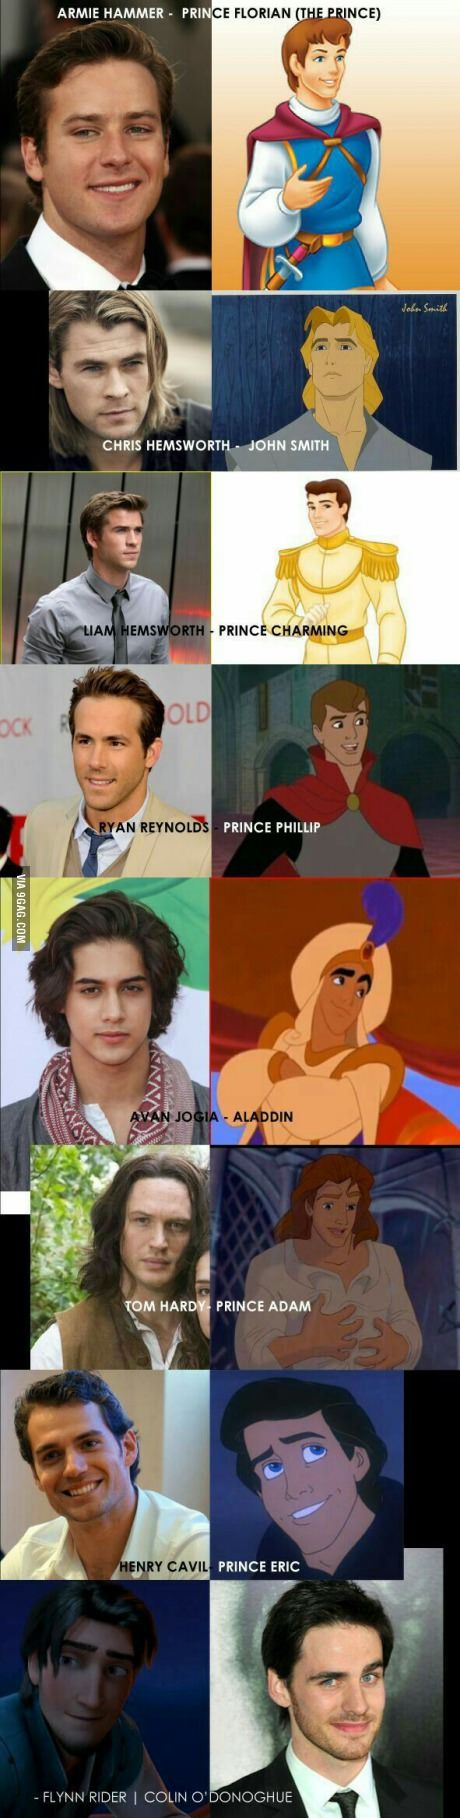 Everyone posting casts for Disney Princesses, so now I'm posting a cast for Disney Male Characters.